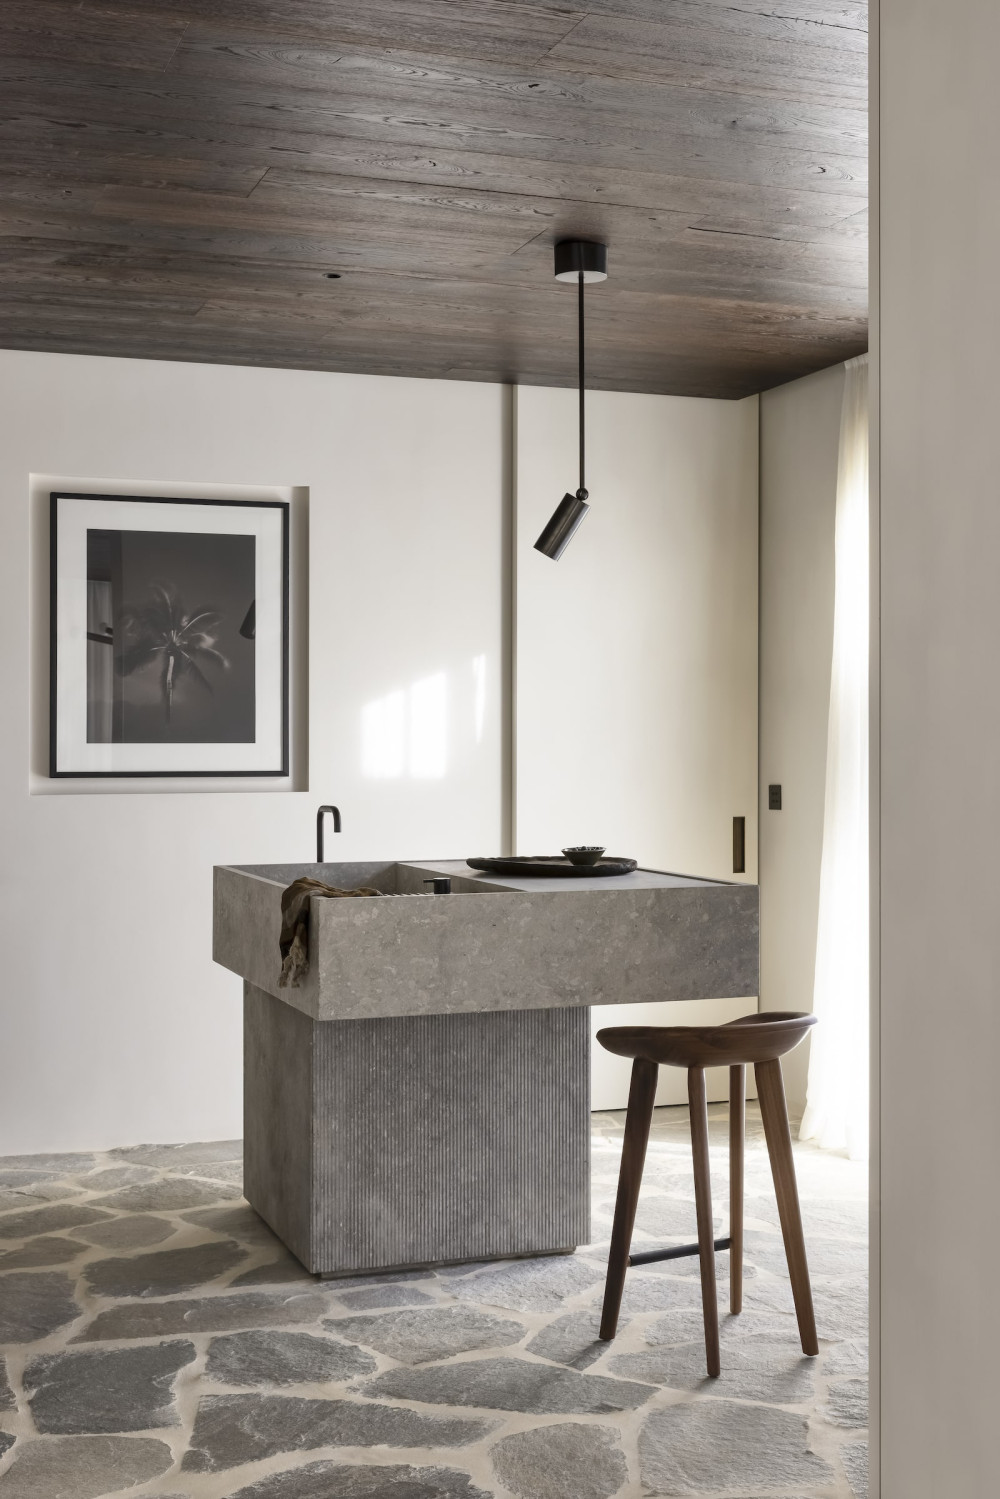 ignant-architecture-andy-kerstens-mud-residence-01.jpg